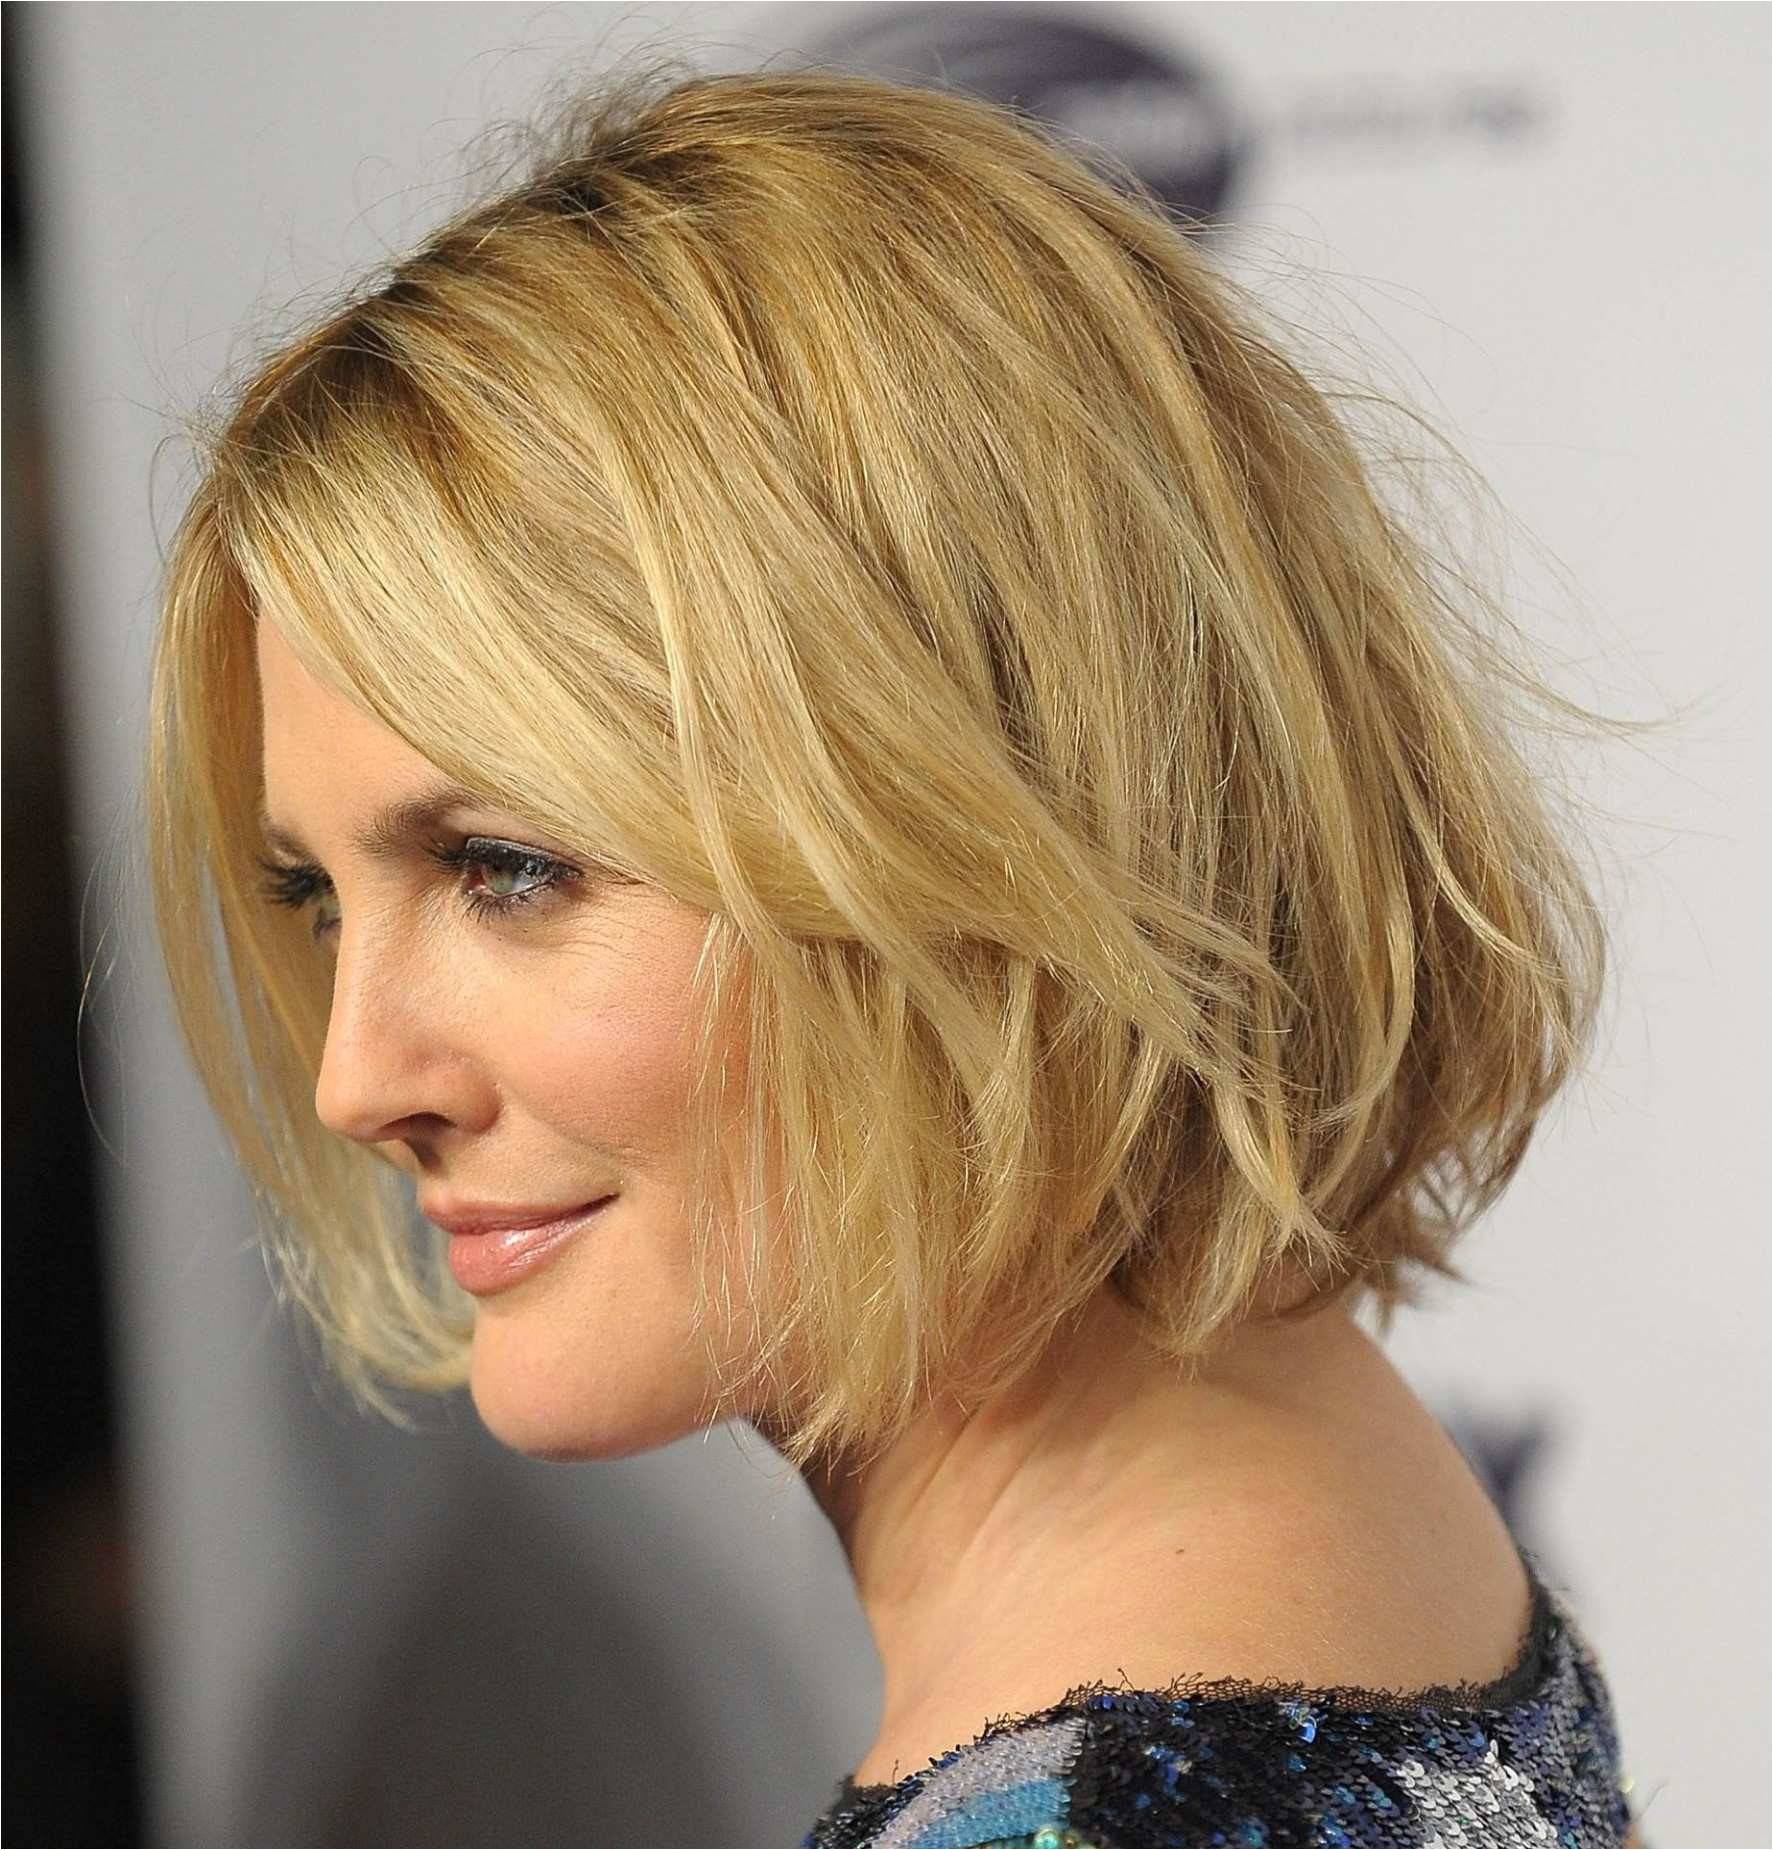 Hairstyles for Blonde Girls Luxury 20 Fresh Haircut Styles for Girls with Medium Hair – New